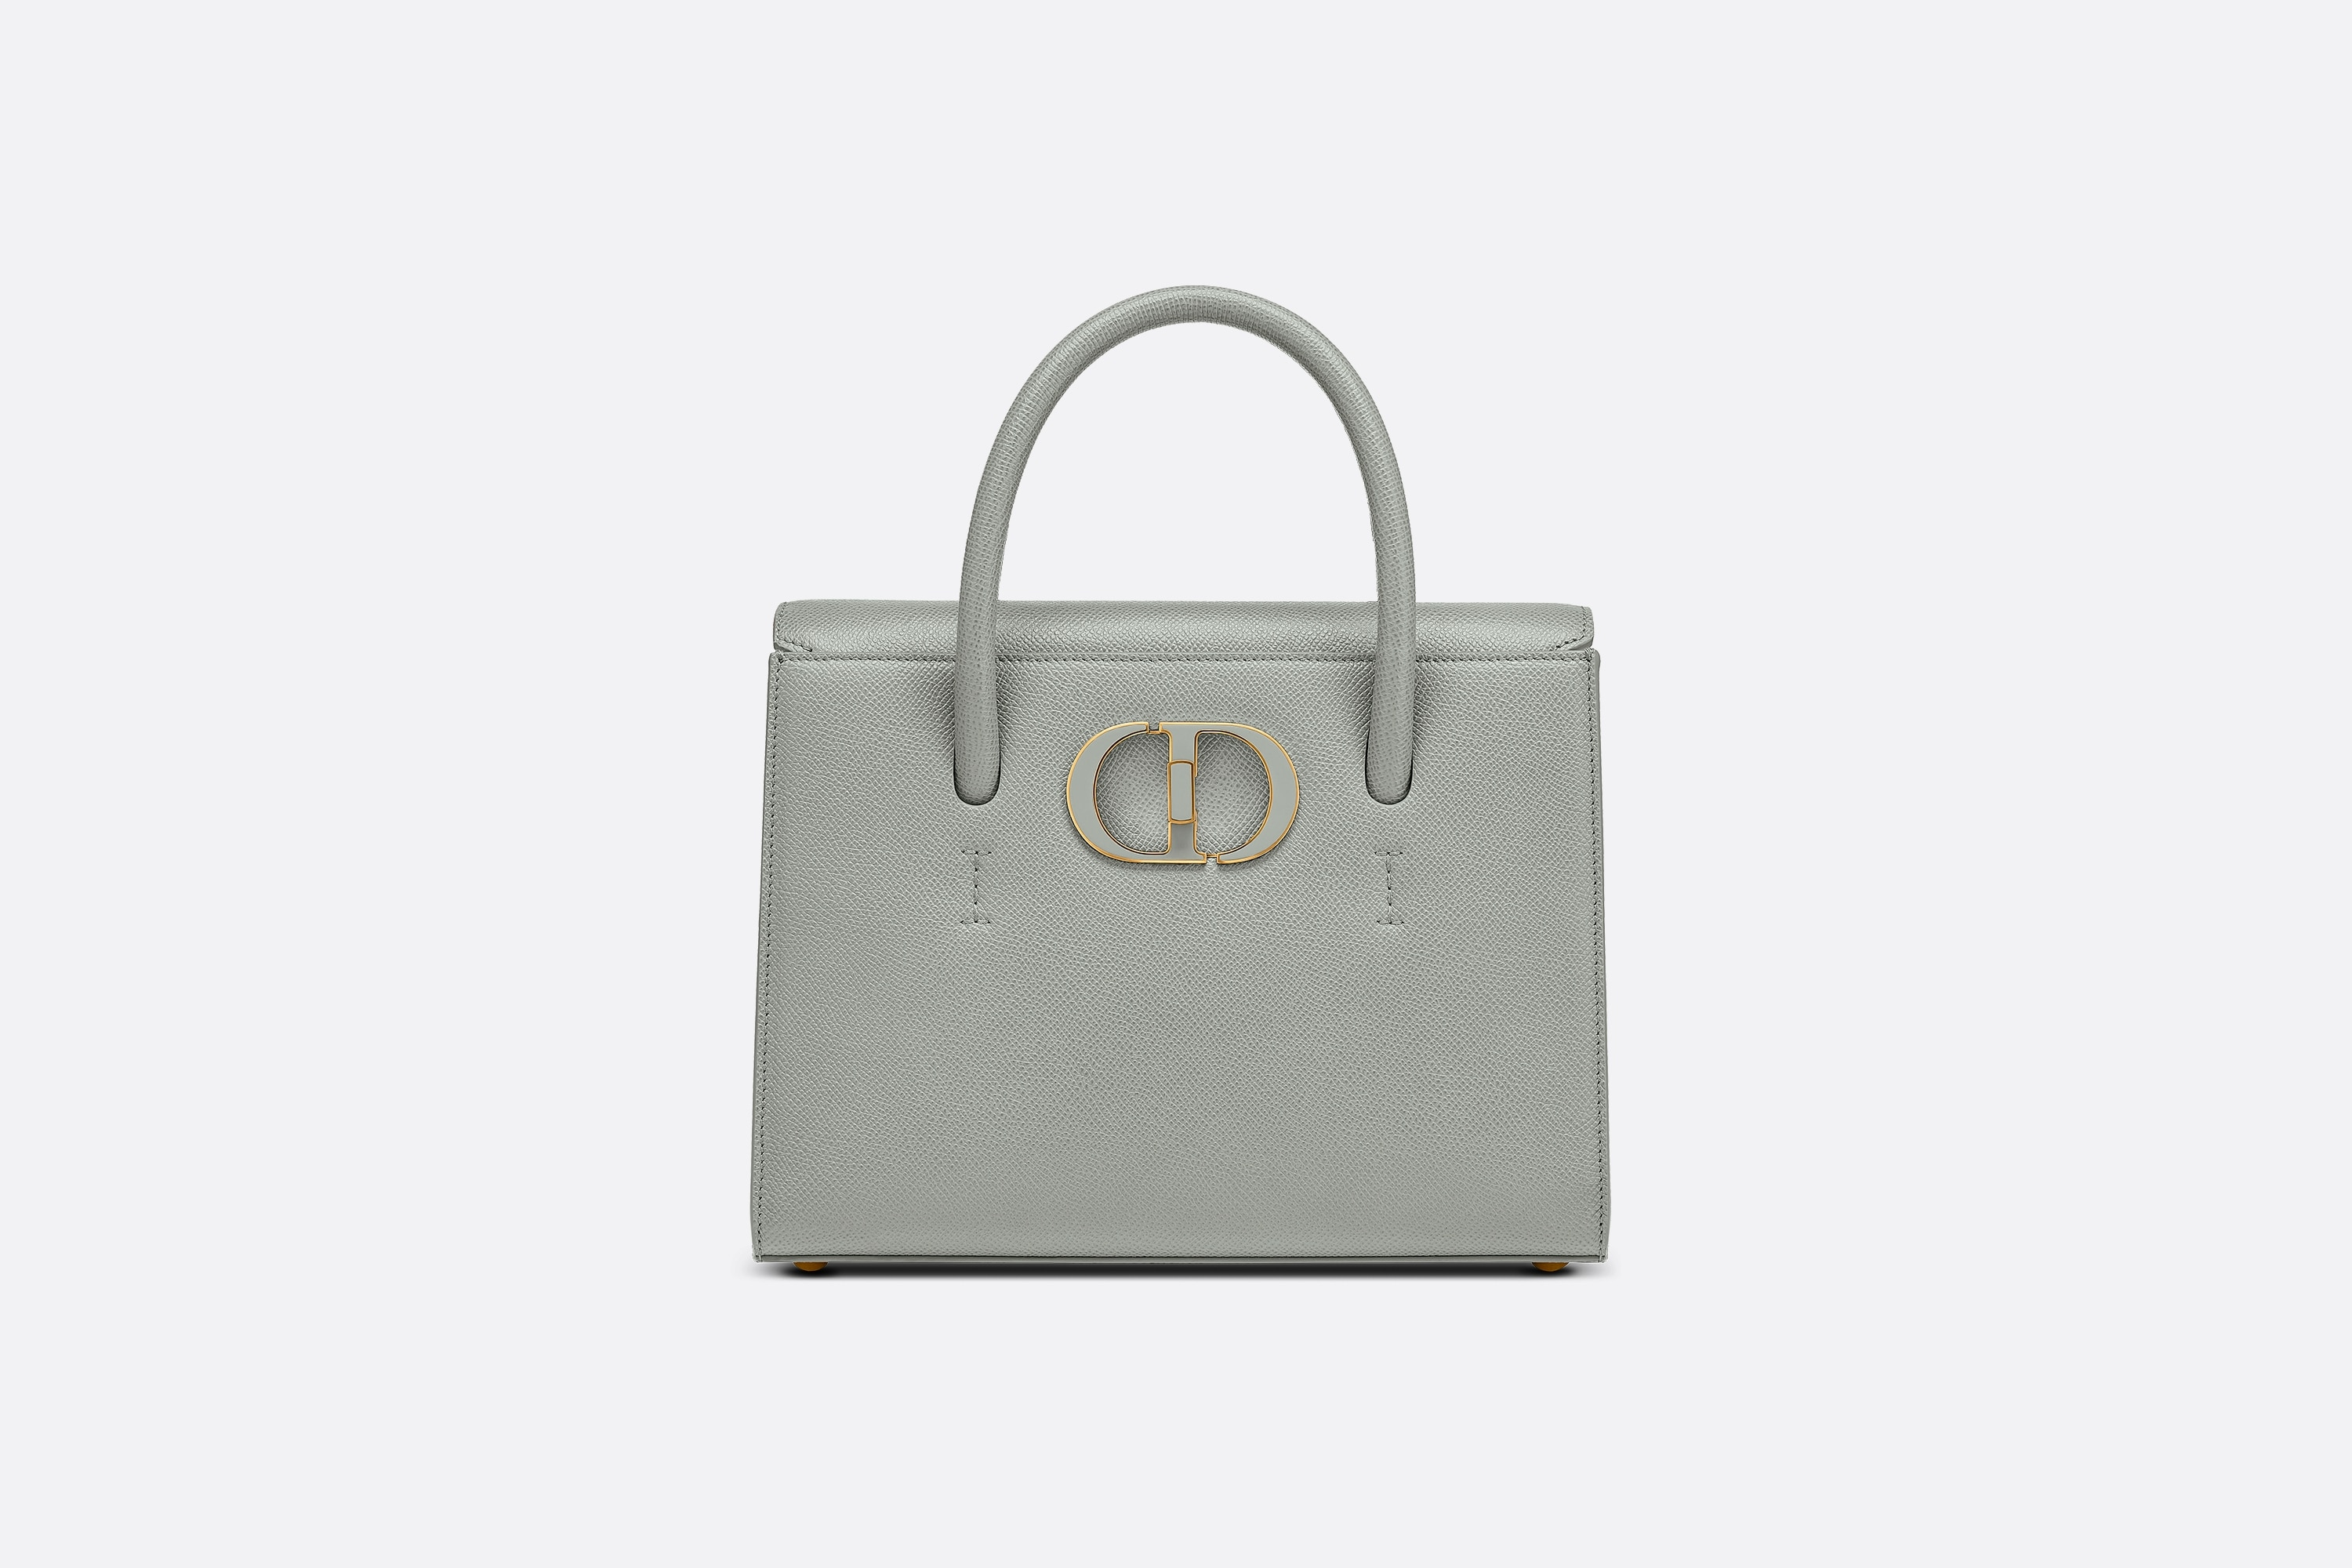 Medium St Honoré Tote Front view Open gallery